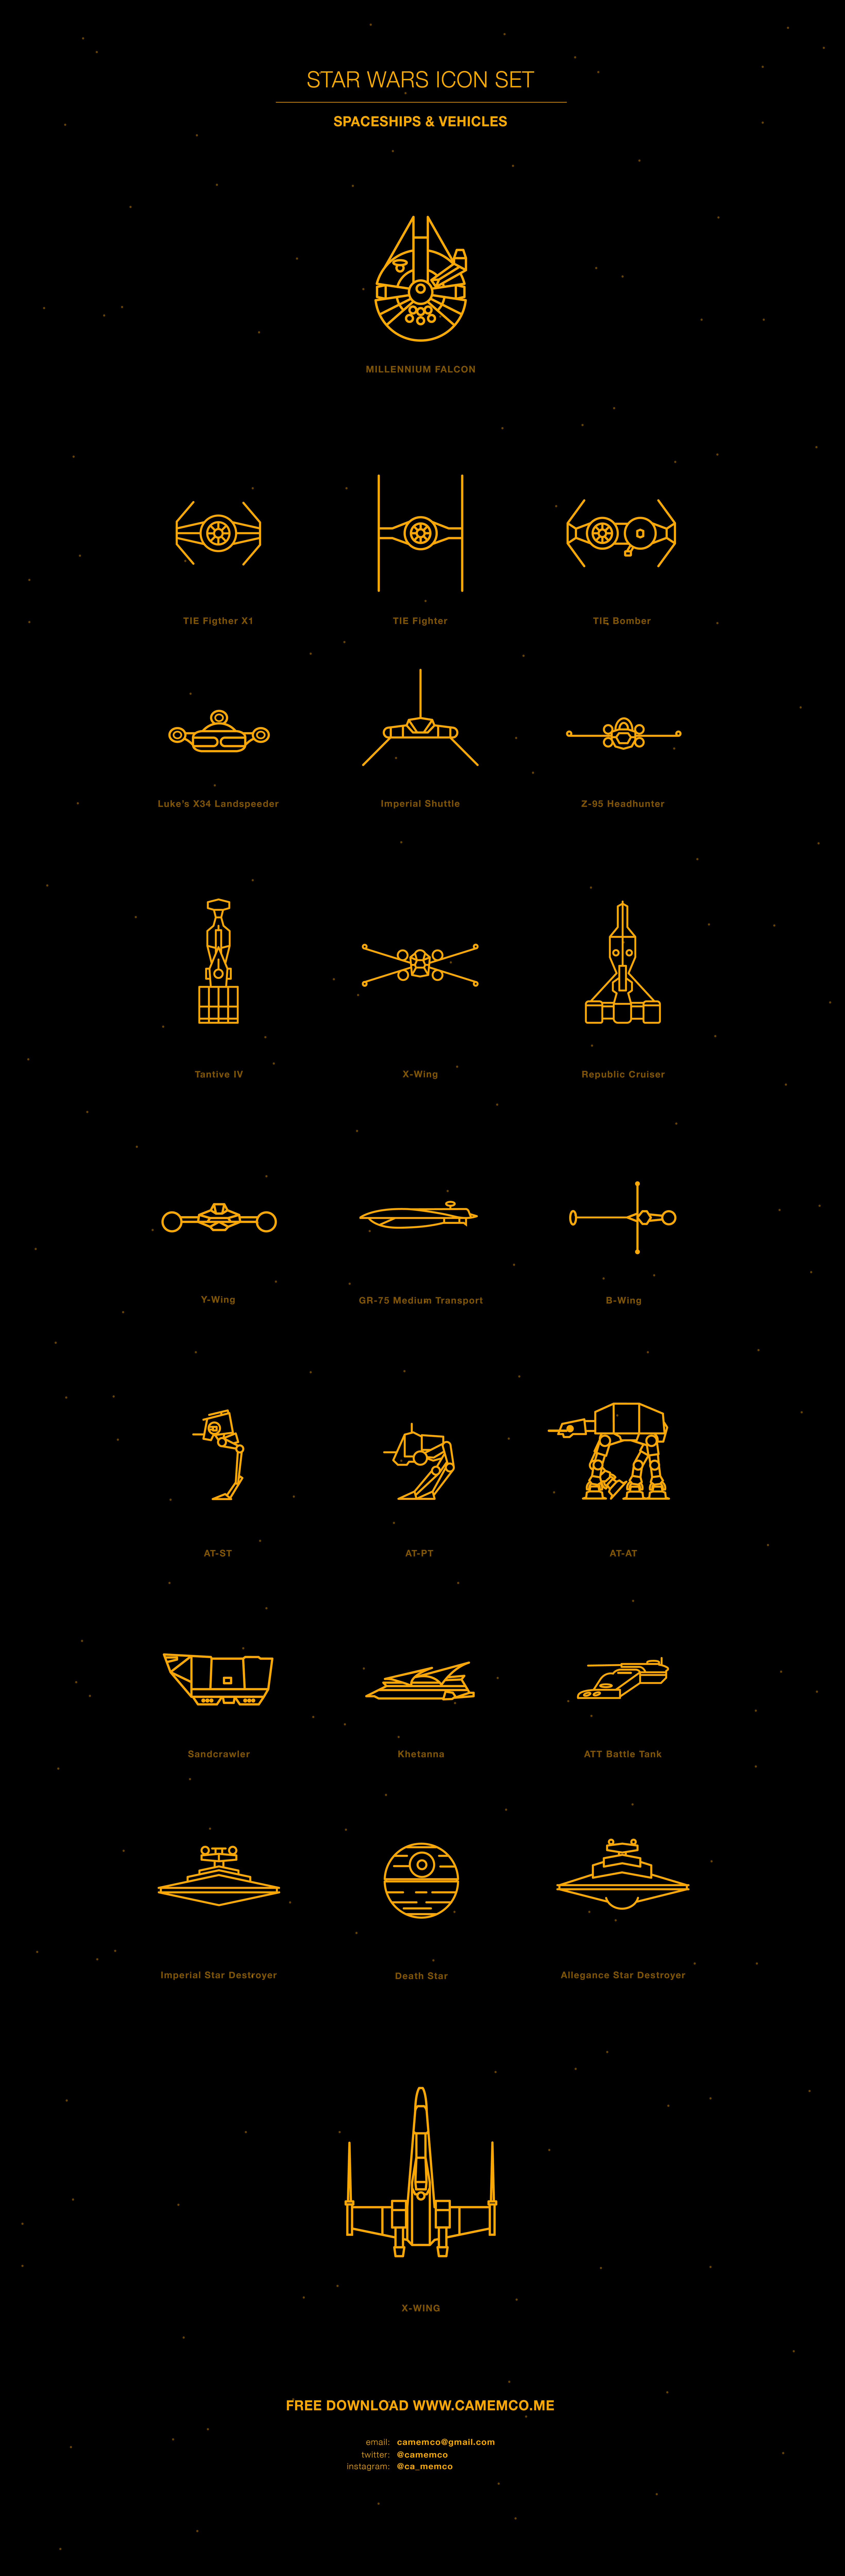 Star Wars Spaceships And Vehicles As Icons Star Wars Icons Star Wars Spaceships Star Wars Ships